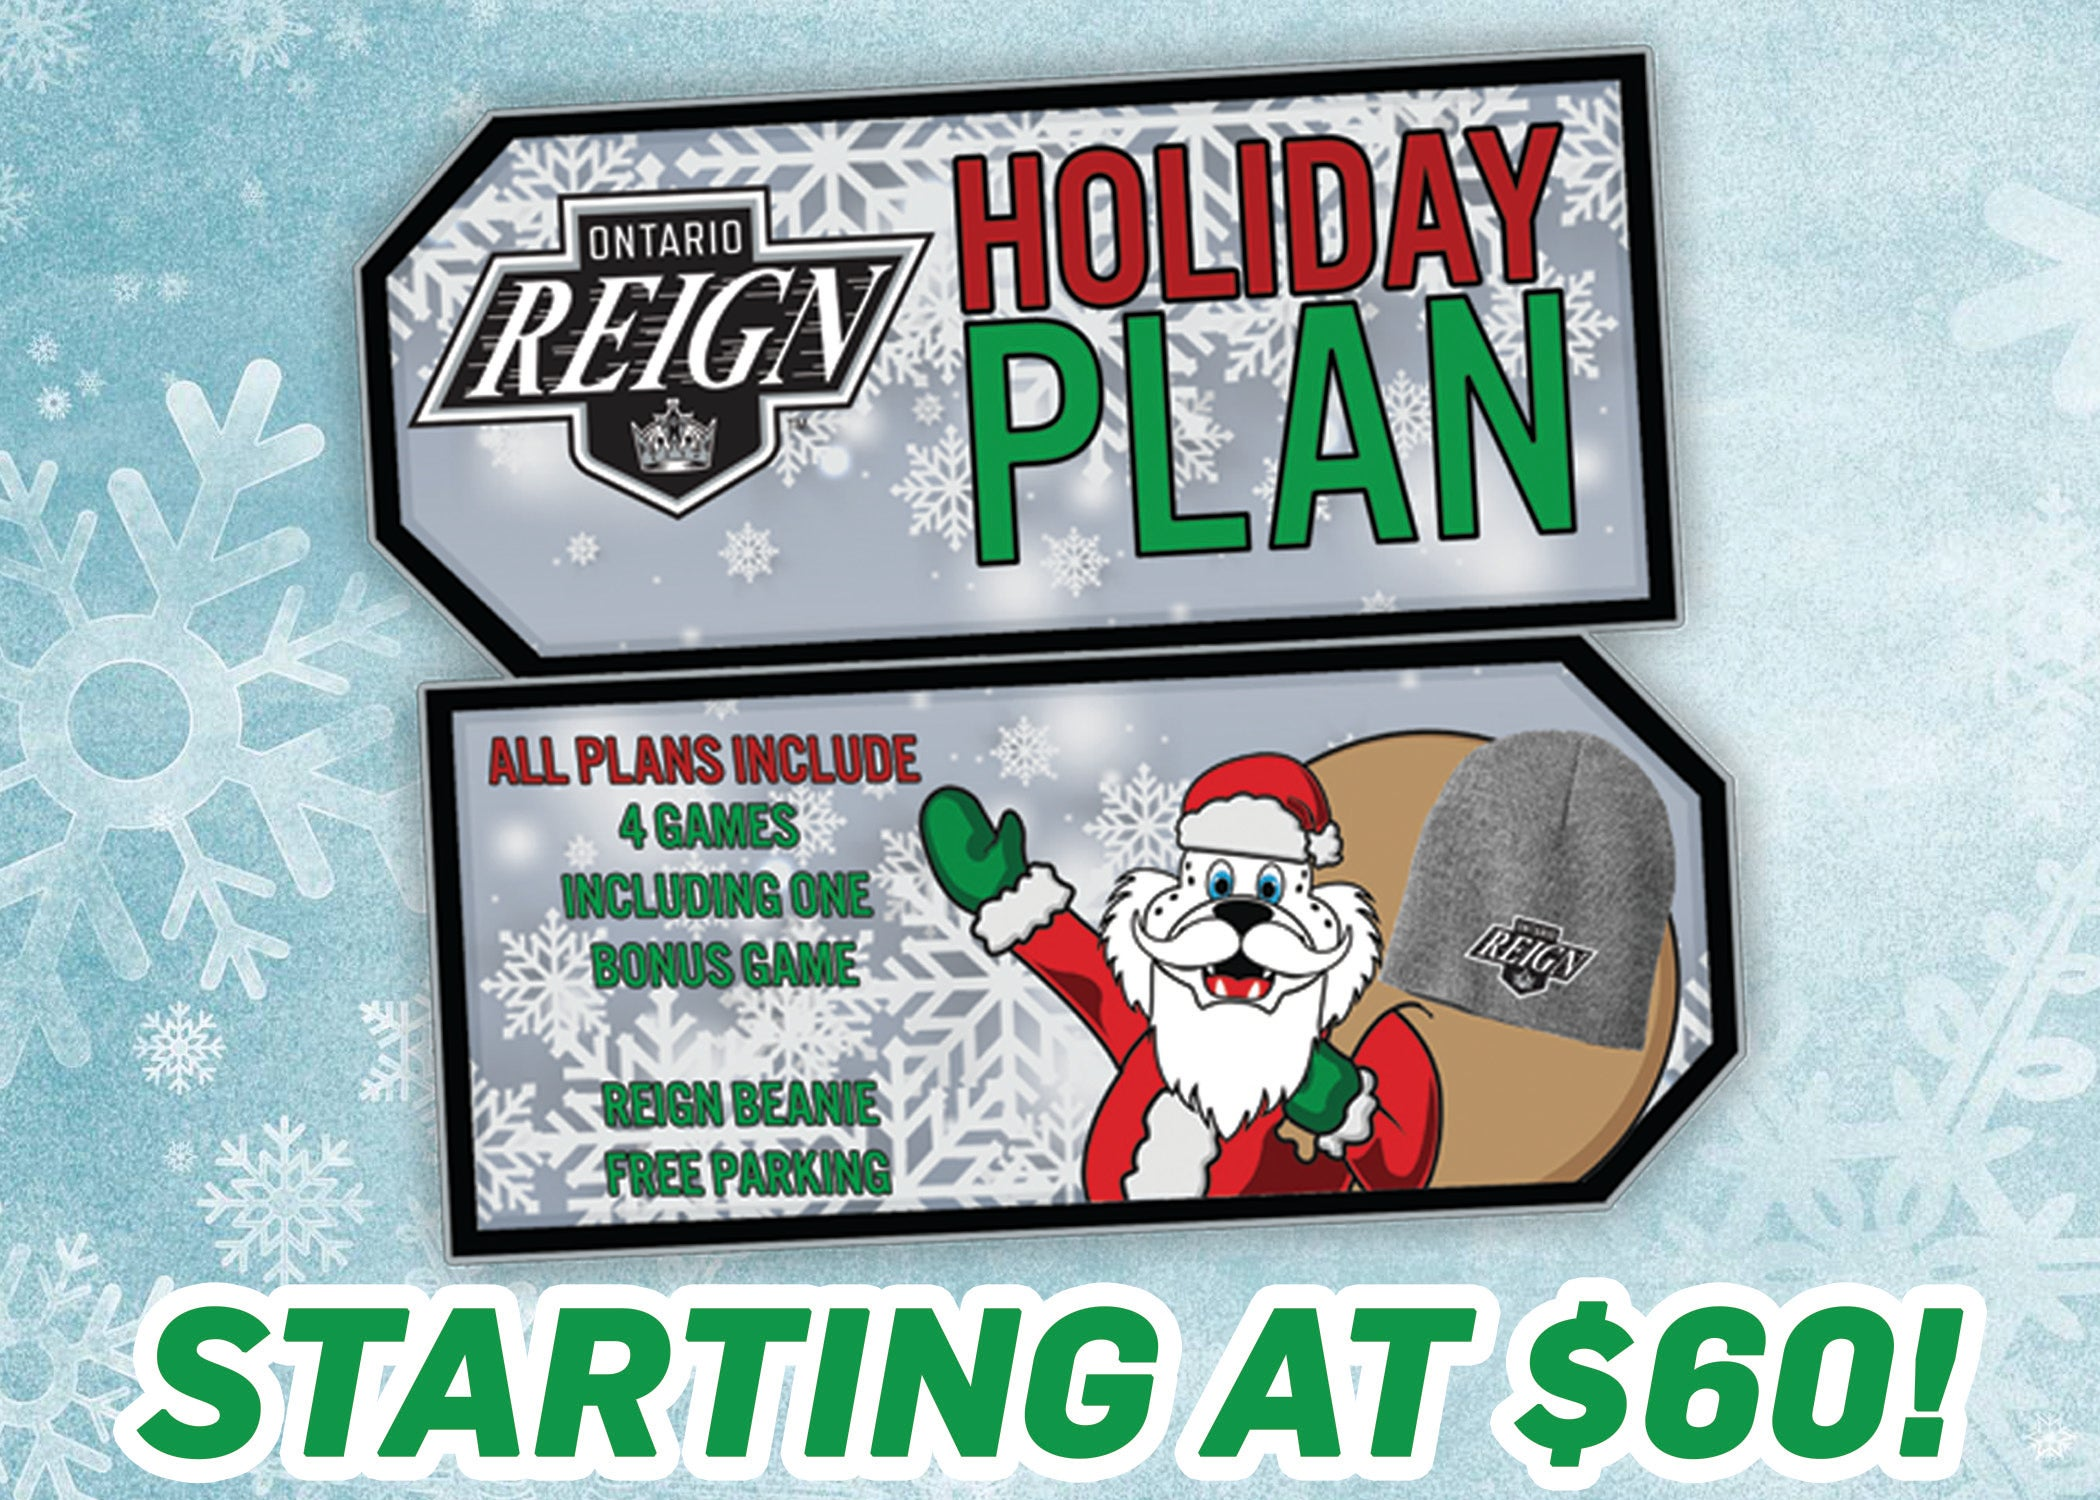 2017-18 Holiday Plan Splash Page Graphic.jpg